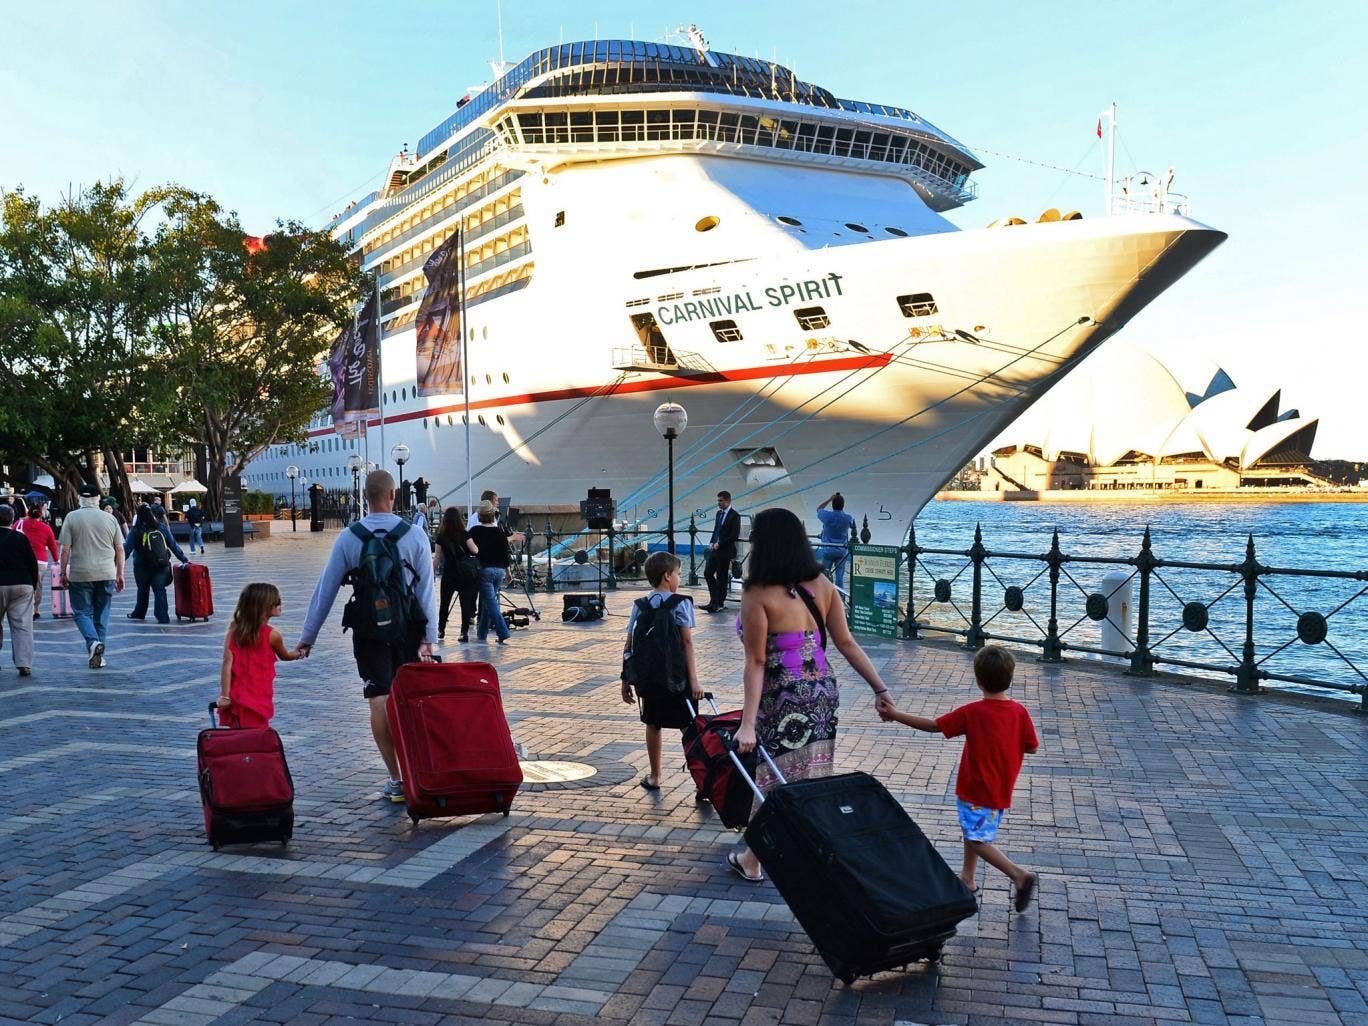 The couple, Australian citizens from New South Wales state, were discovered missing this morning after the Carnival Spirit docked at Sydney's Circular Quay, at the end of a 10-day journey.